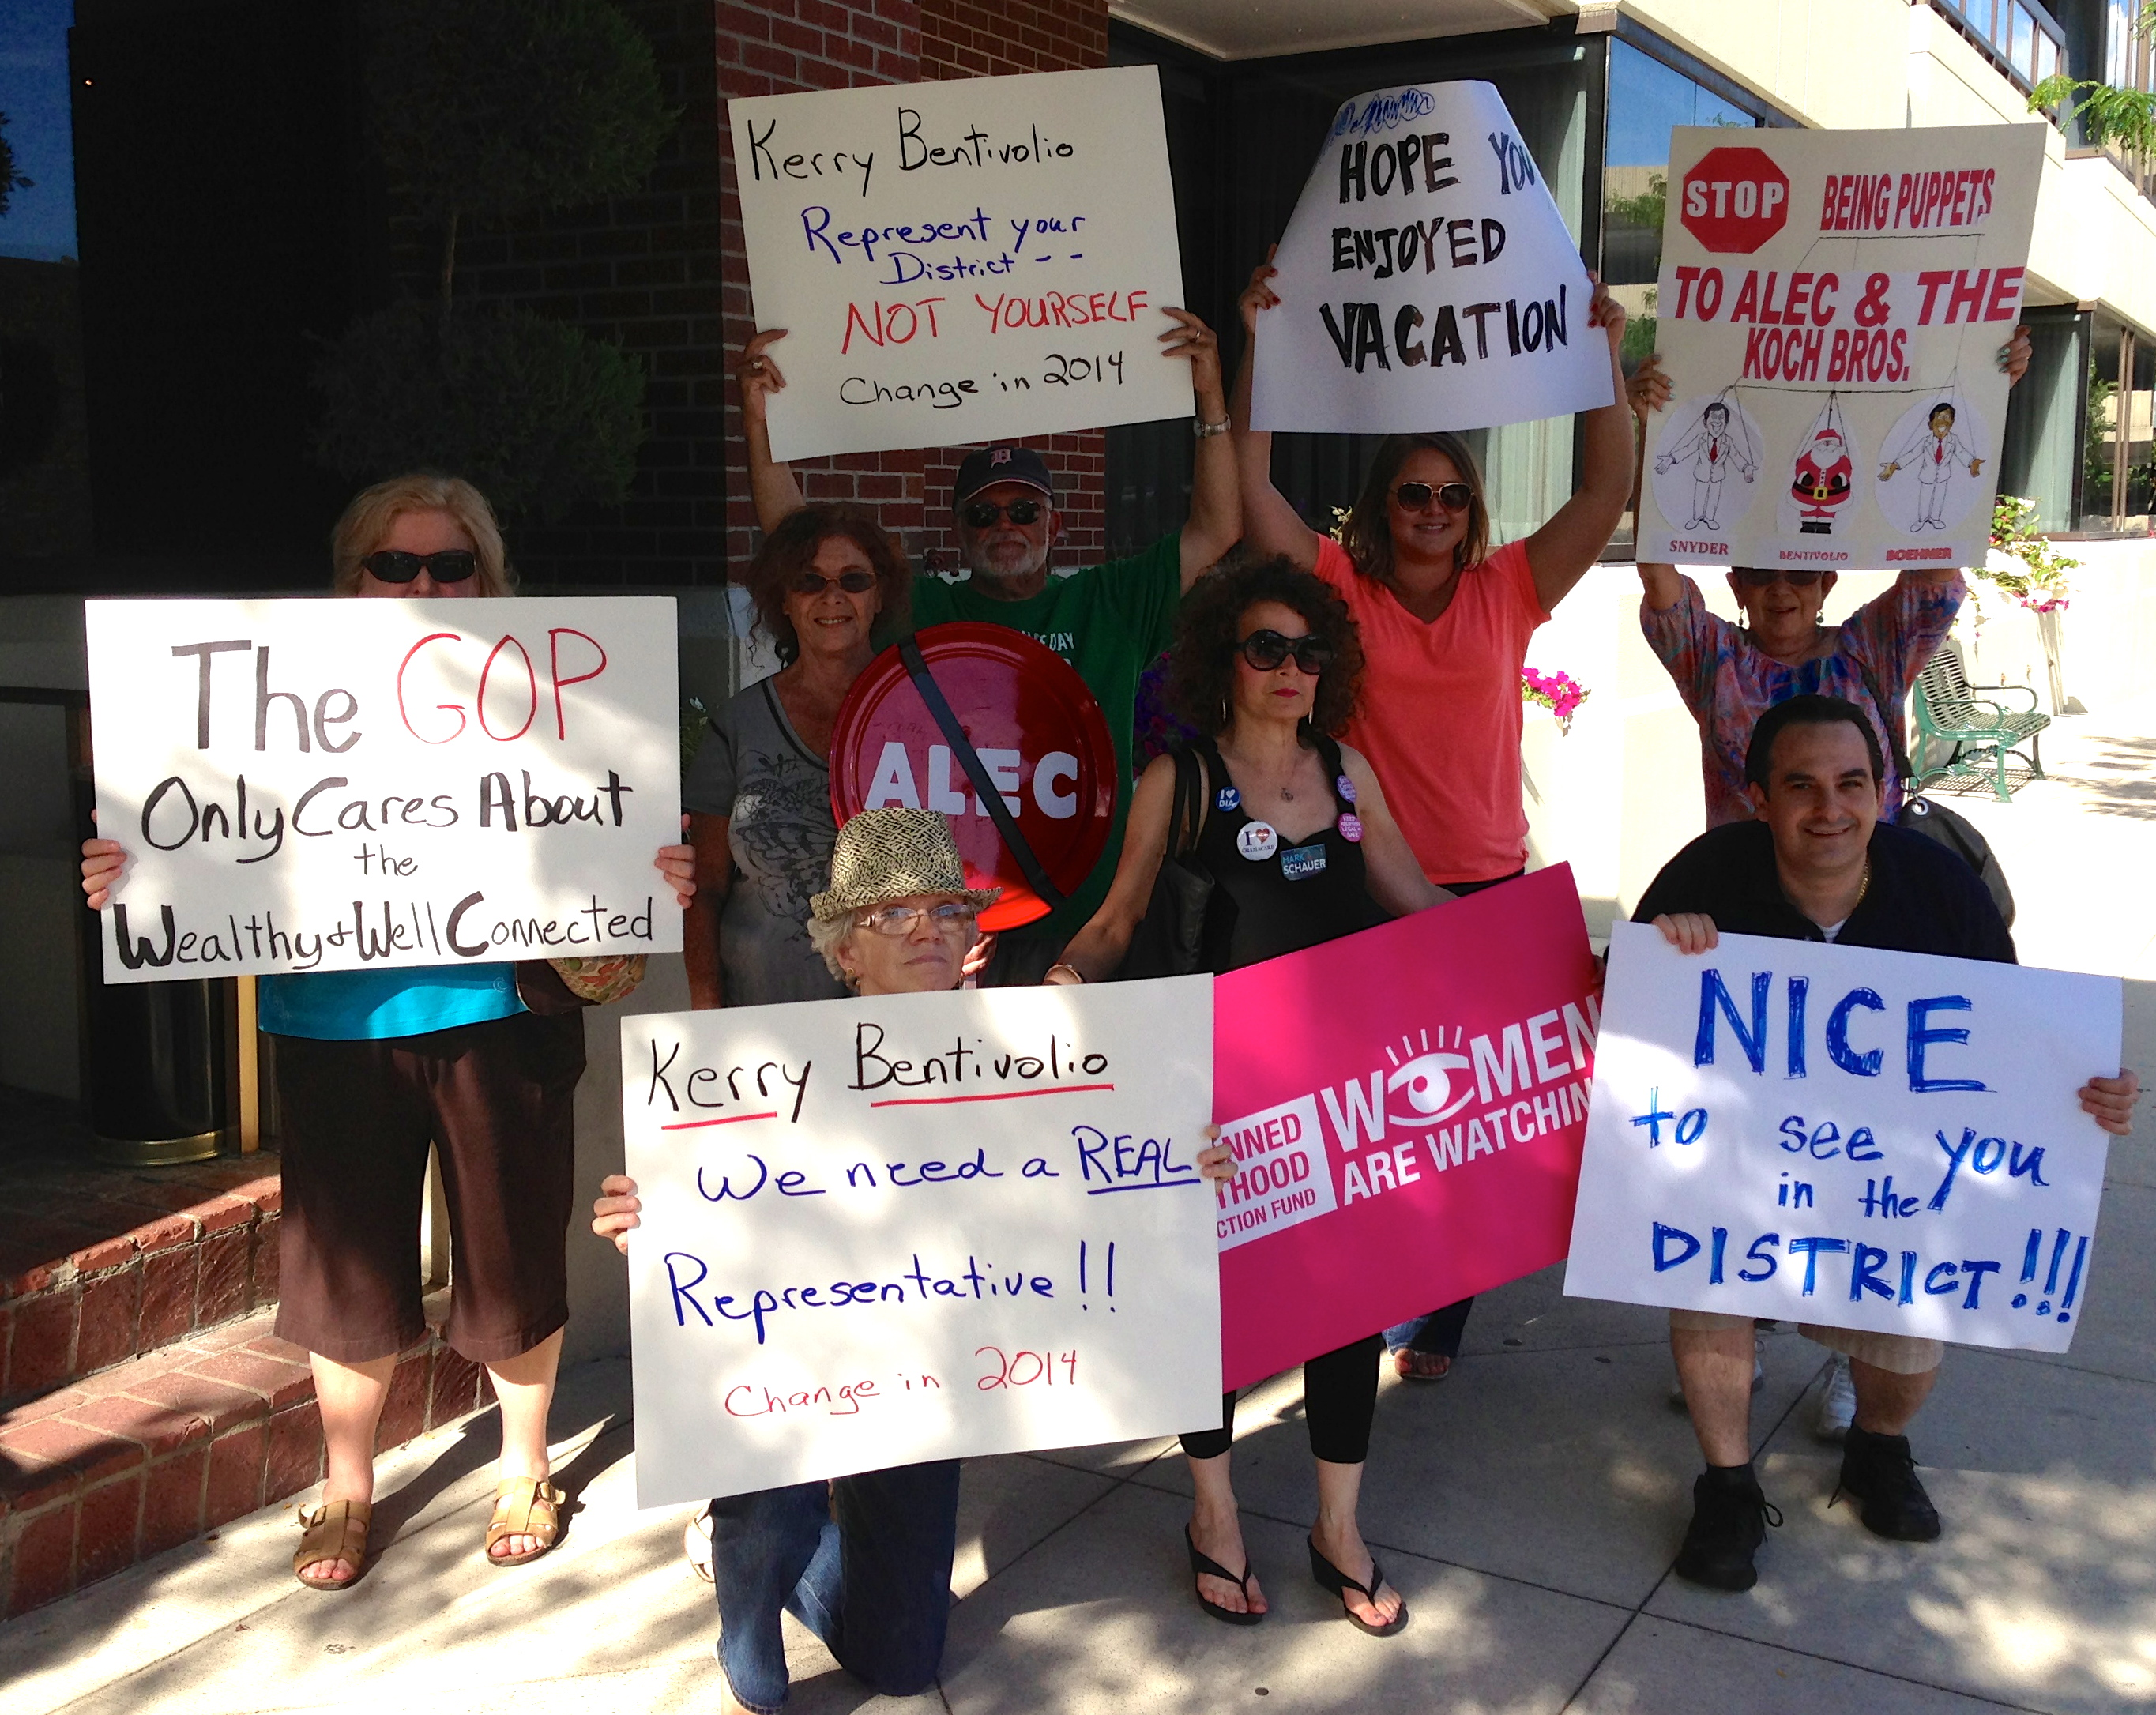 Protesters gather to remind Rep. Kerry Bentivolio who he works for